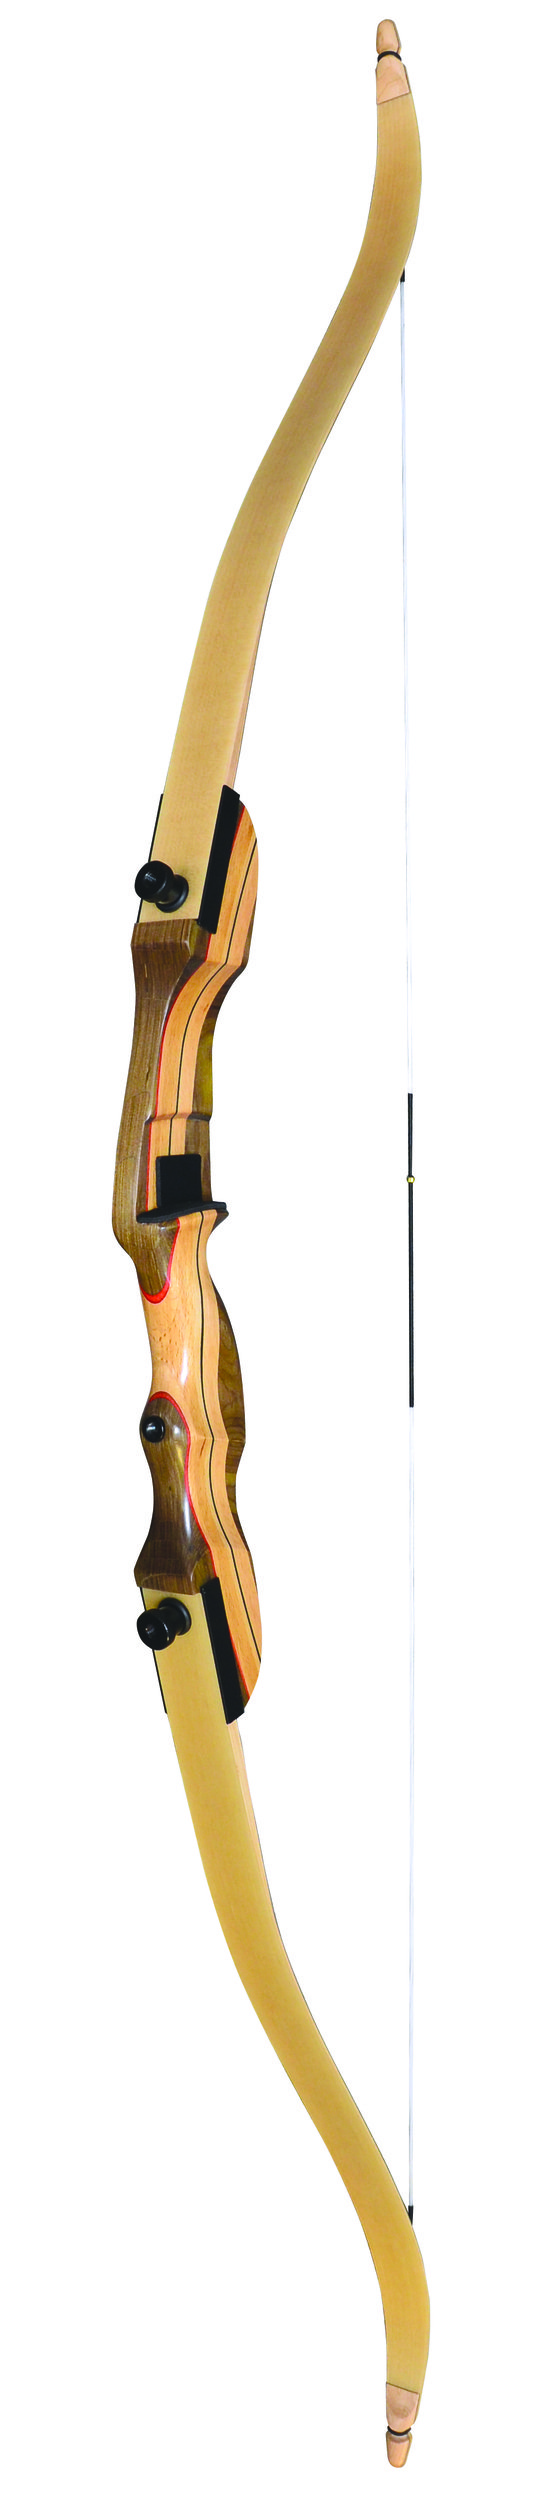 #2444 Monarch 62 Inch Recurve with Natural Limbs thumbnail